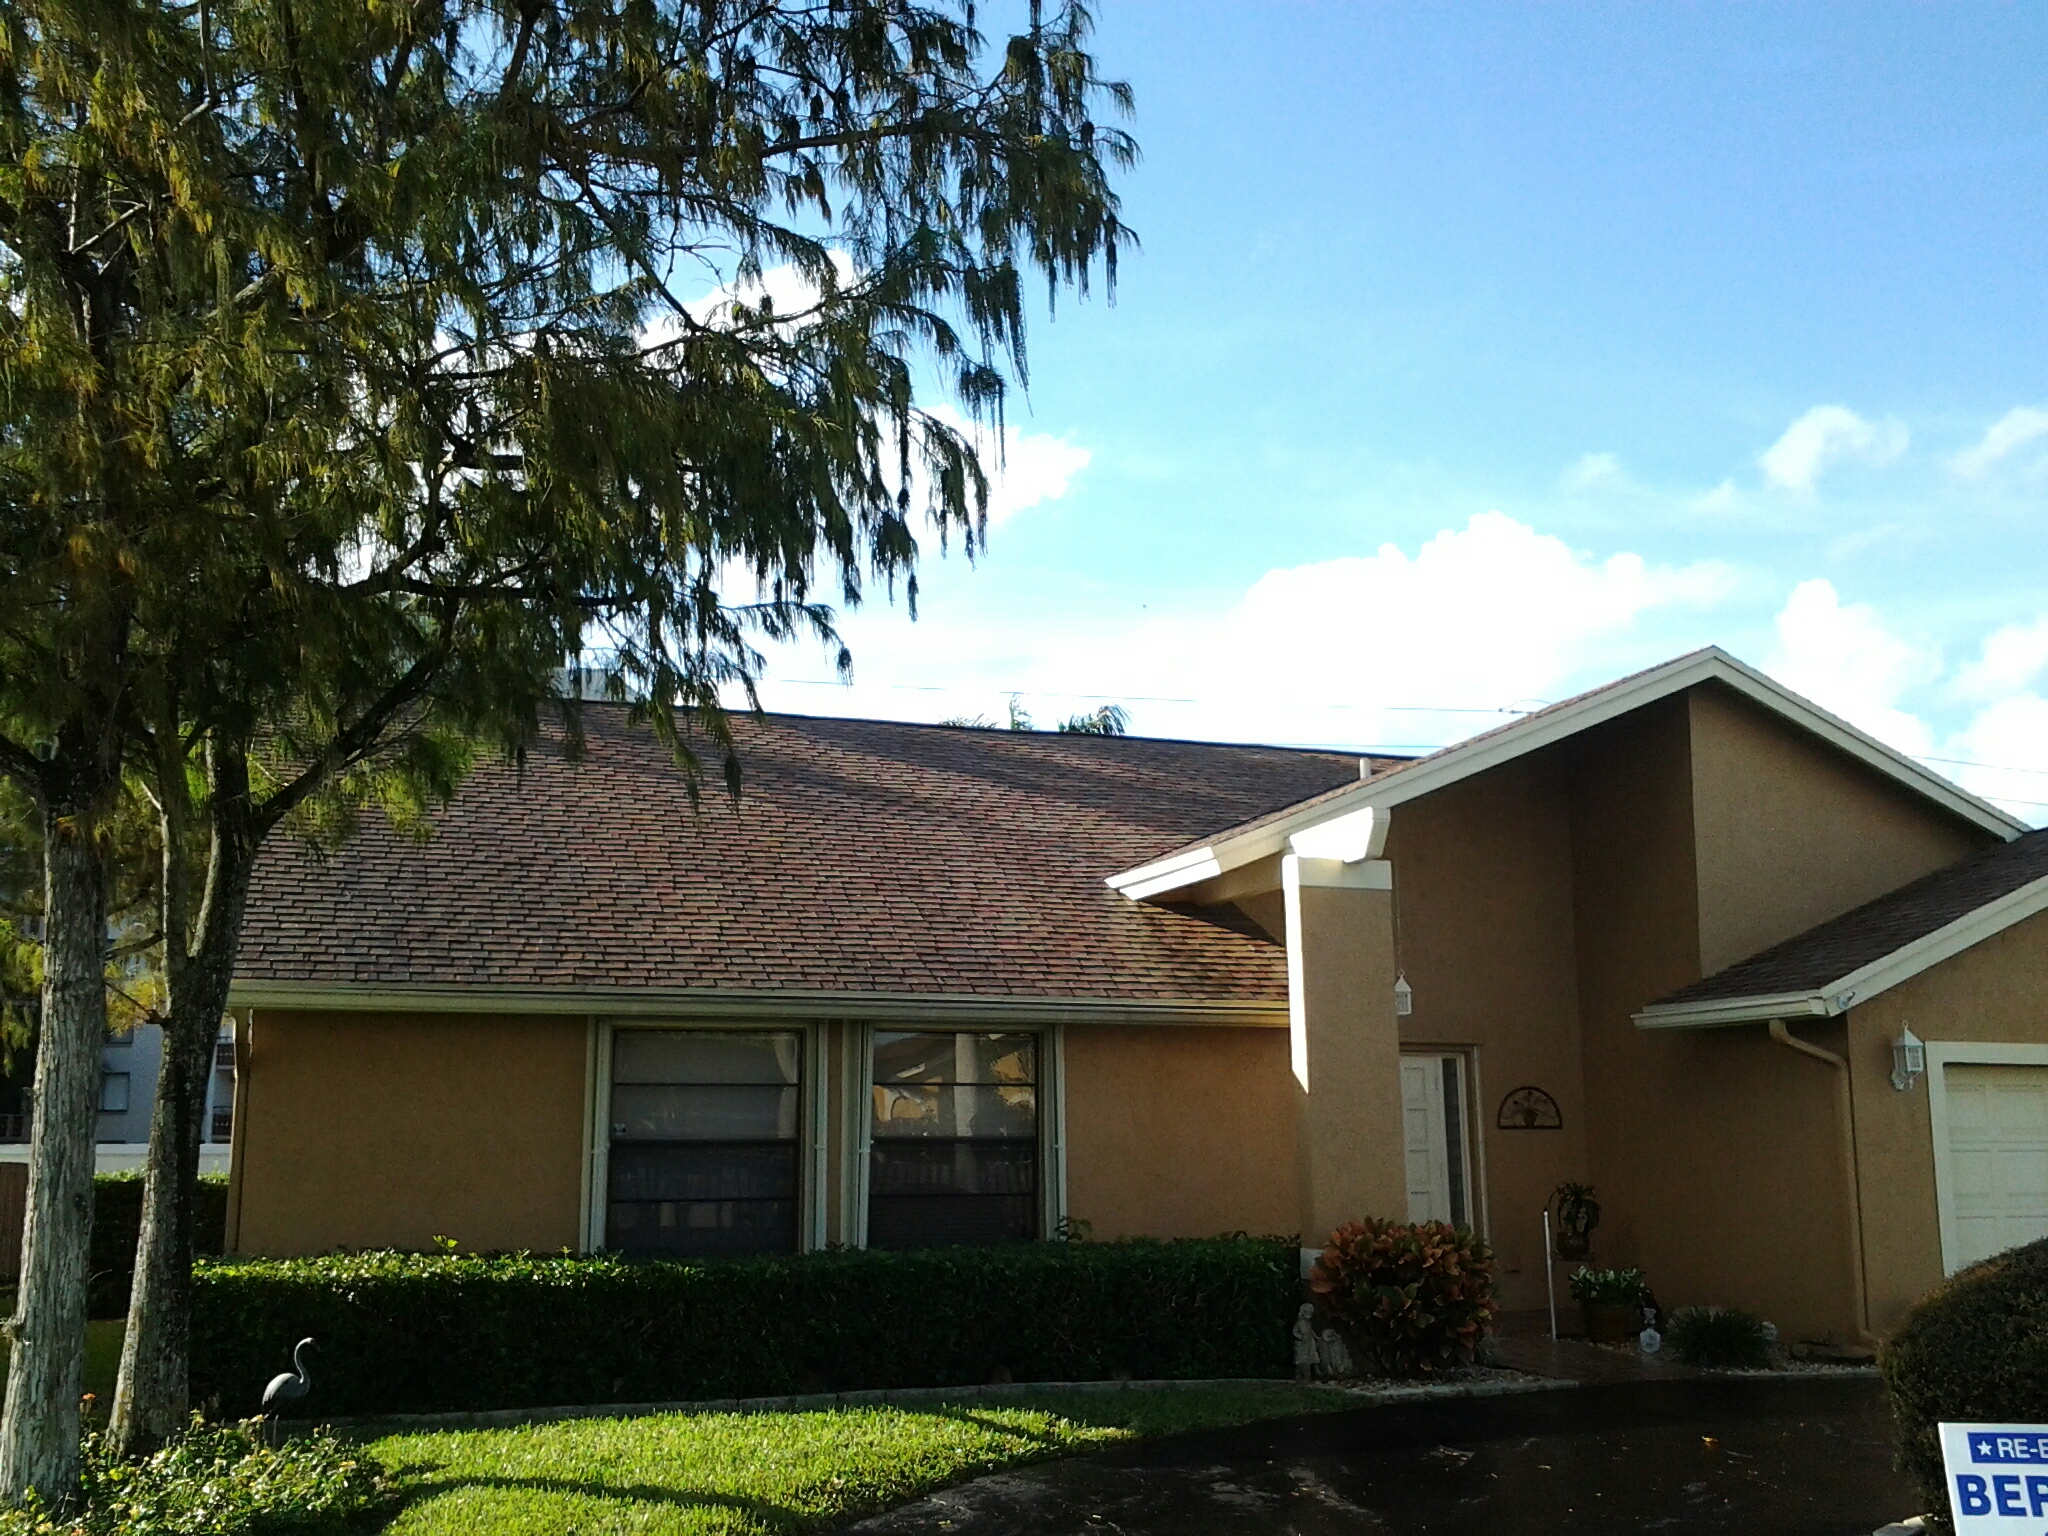 Lauderhill Fl Earl W Johnston Roofing